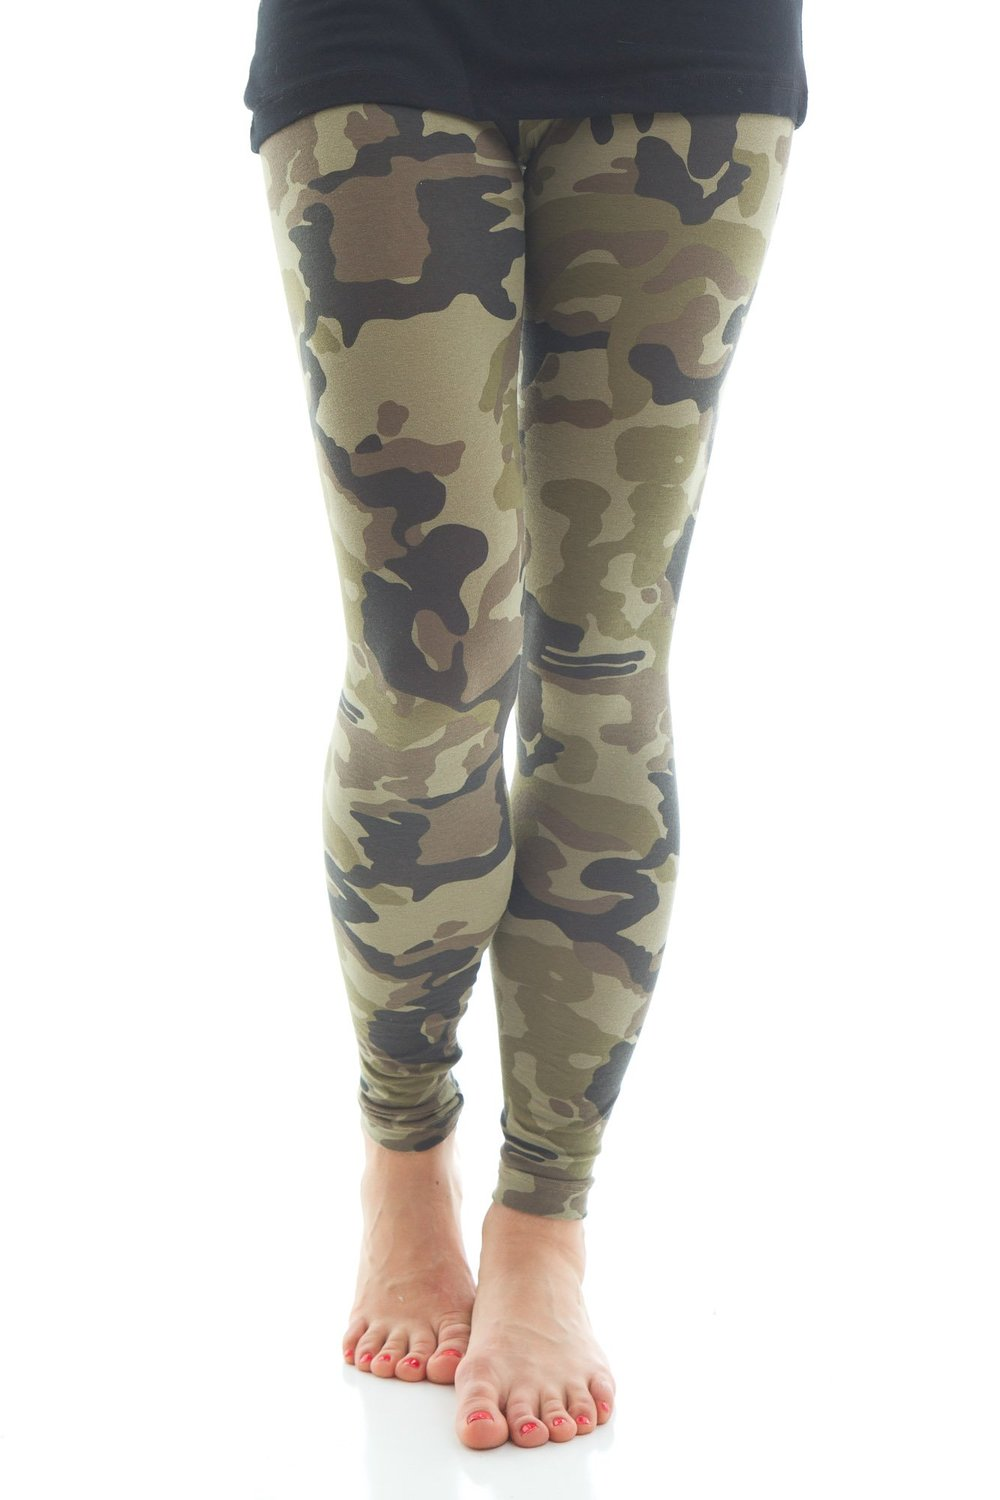 Camo Women's Apparel; Camo Leggings & Tights; Sort by: Camo Leggings & Tights. We offer Hunting And Army Camo Tights and Leggings! If you love Mossy Oak and Realtree type patterns then you will love the Hunting Tights. We have pink and green woodlands tights also! Choose from the patterns below to find out more information including costs! 3.